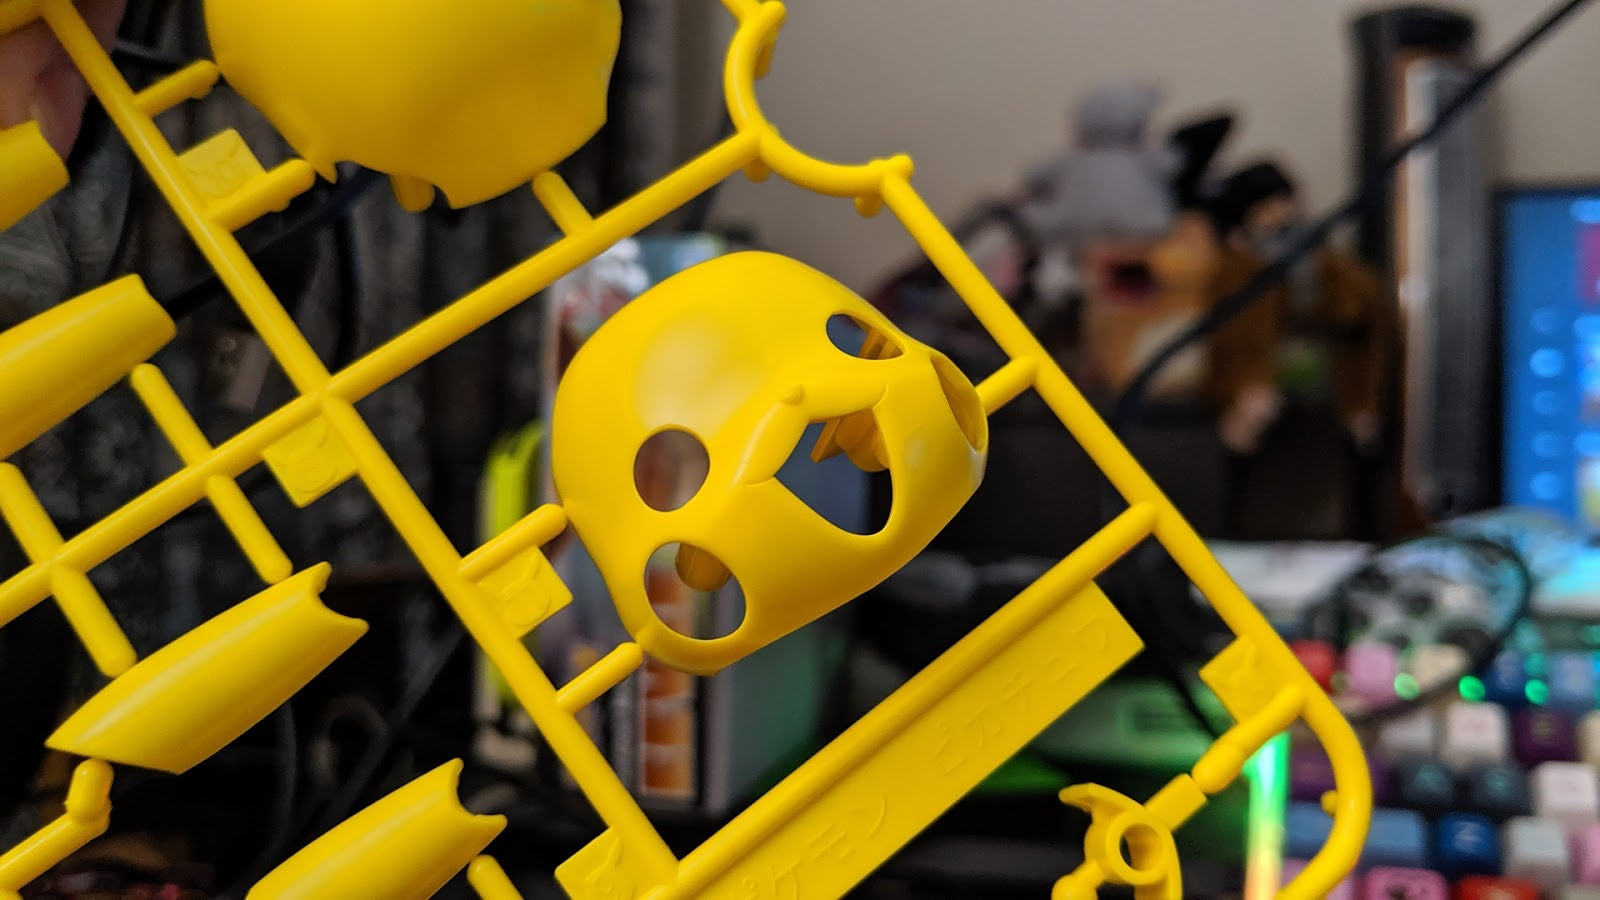 Putting Together Bandai's Pokémon Models Is Fast, Fun, And Mildly Horrific